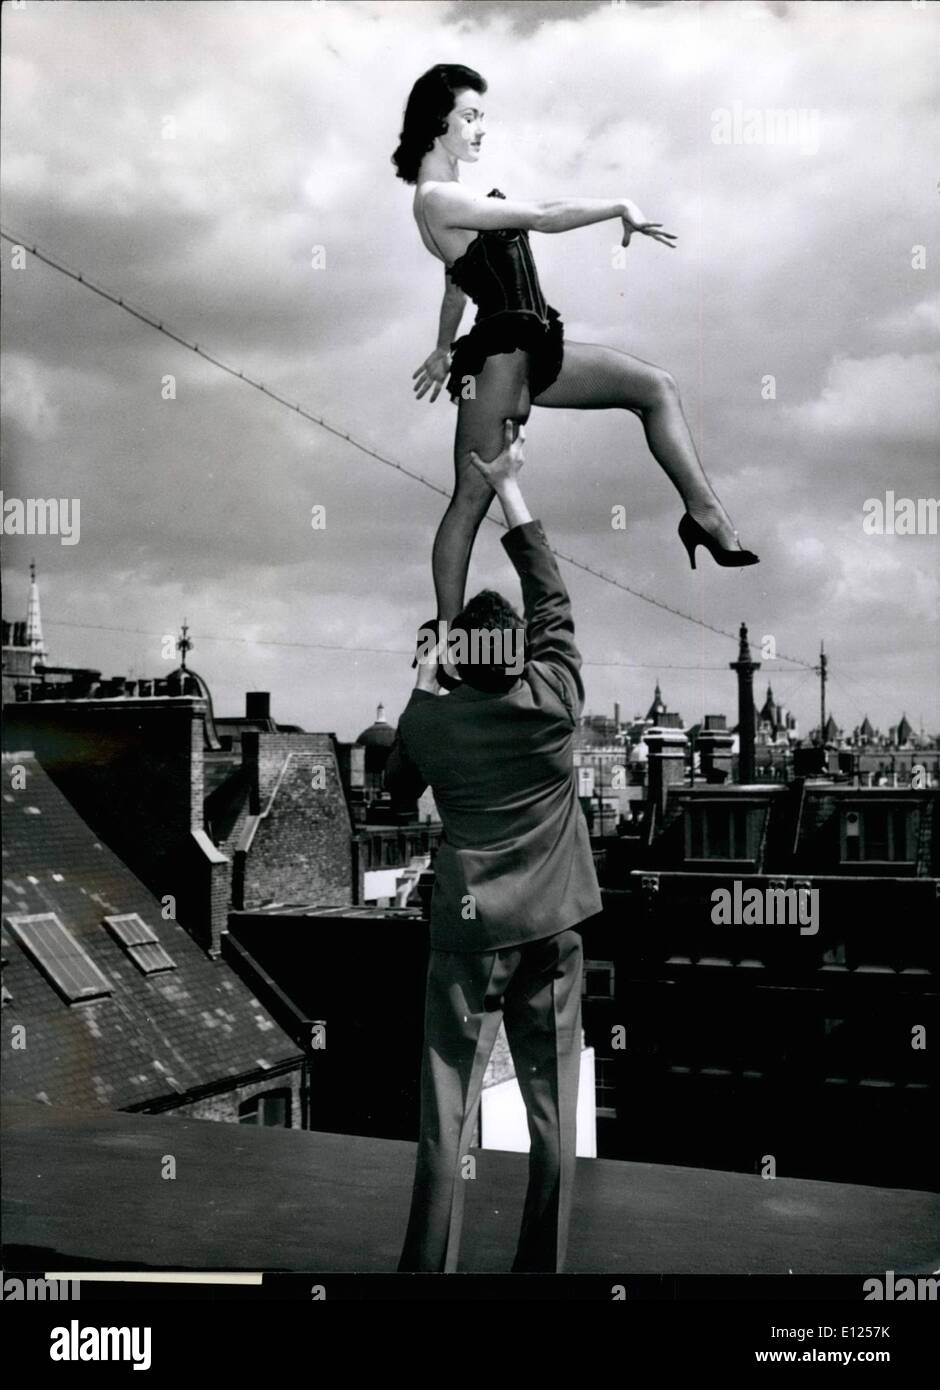 Mar. 03, 1987 - Another attractive statue is added to the London skyline as pretty Marian Morris is lifted aloft by one of her partners. She looks as if she is about to step onto Nelson's Column. - Stock Image